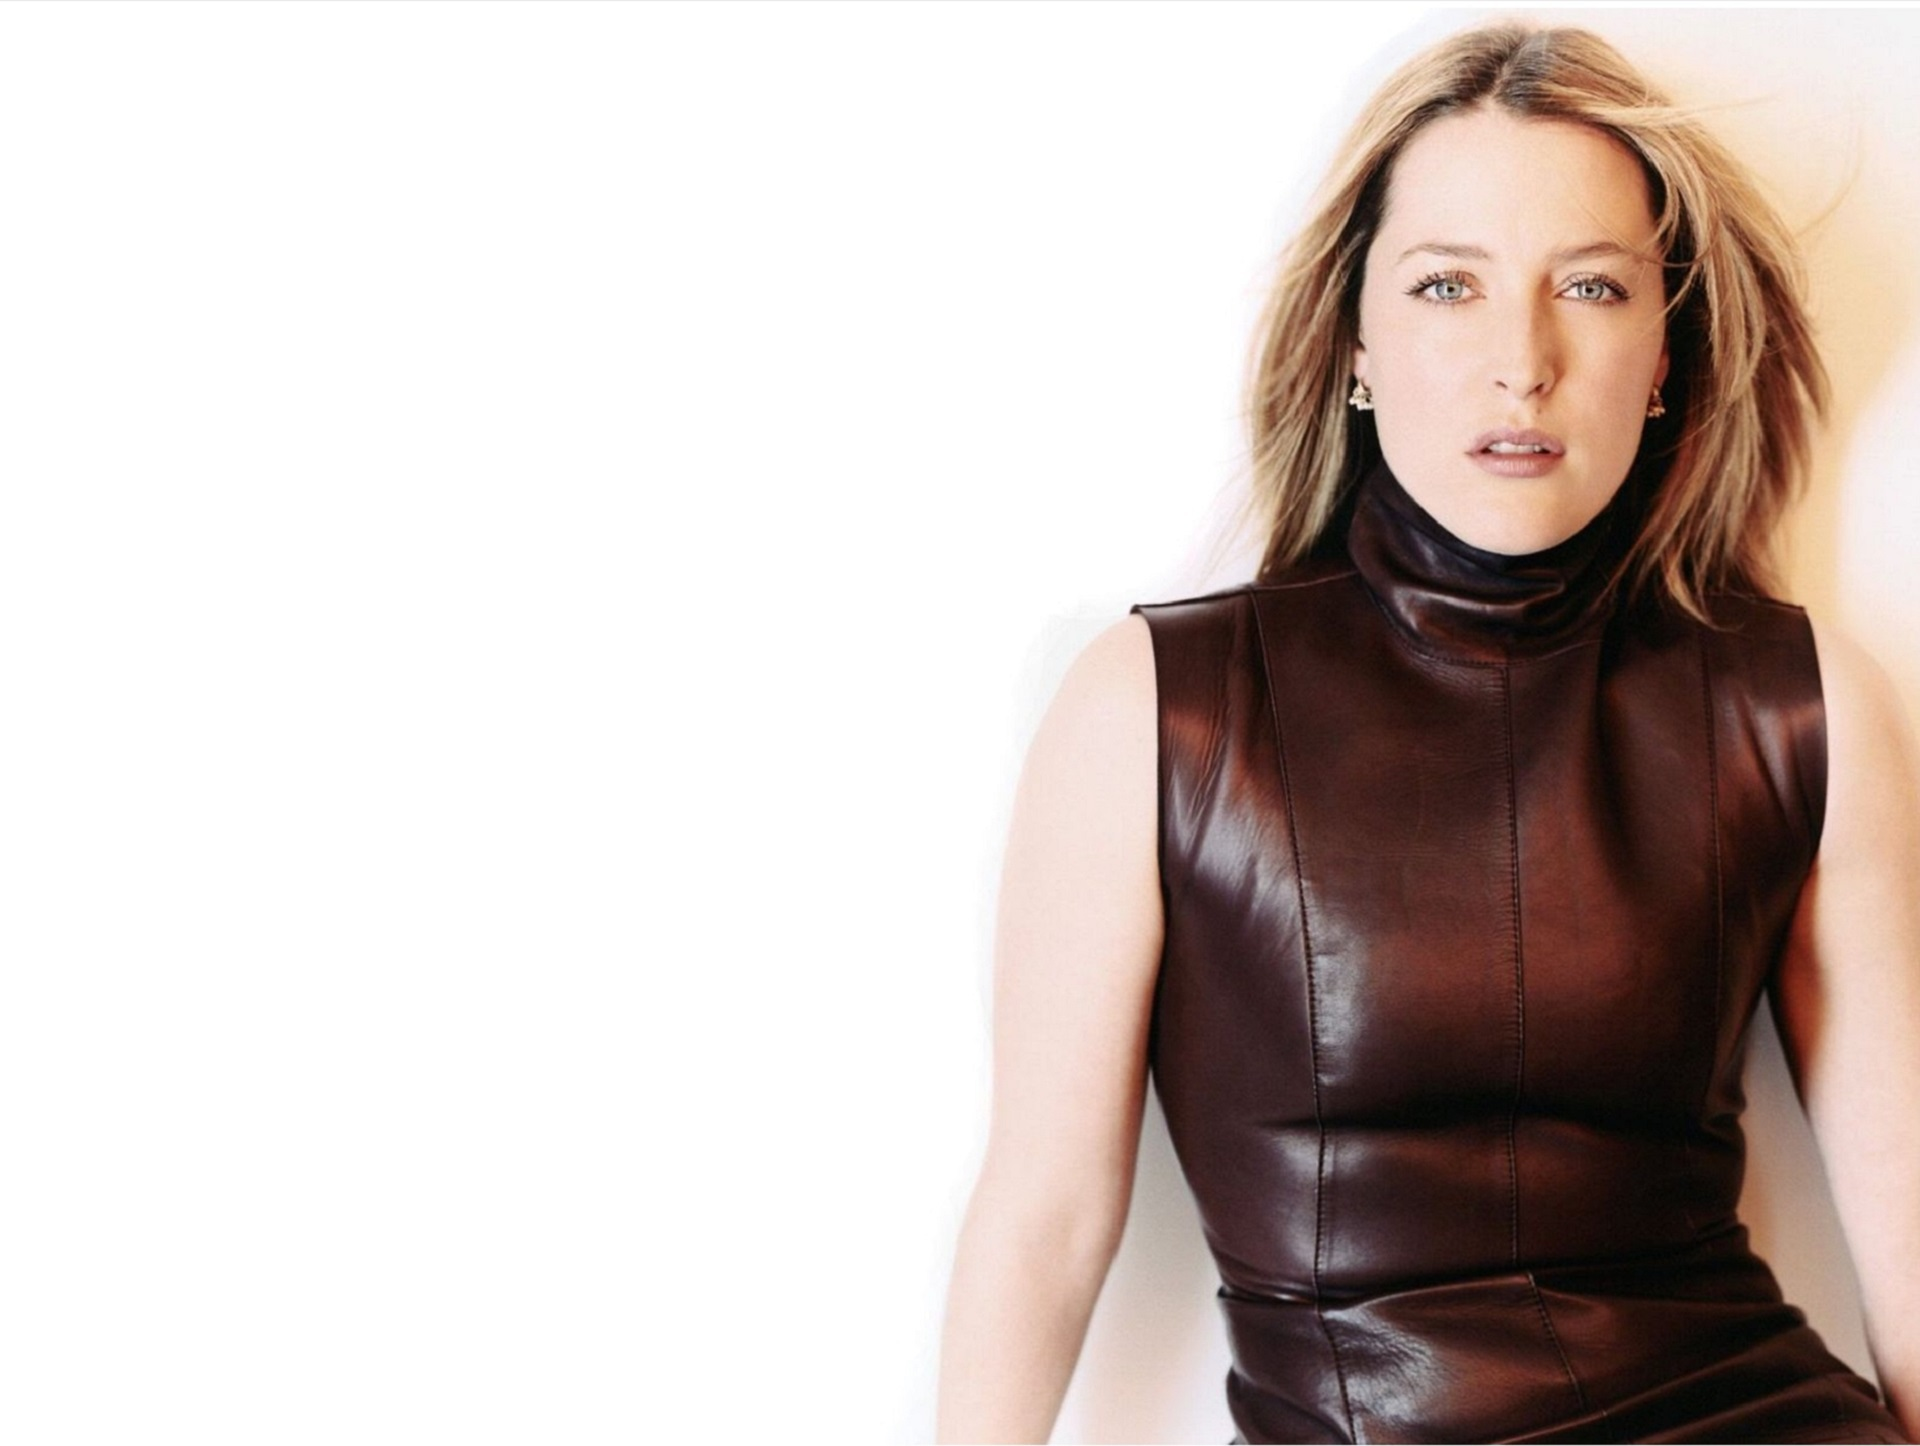 Pictures Of Gillian Anderson